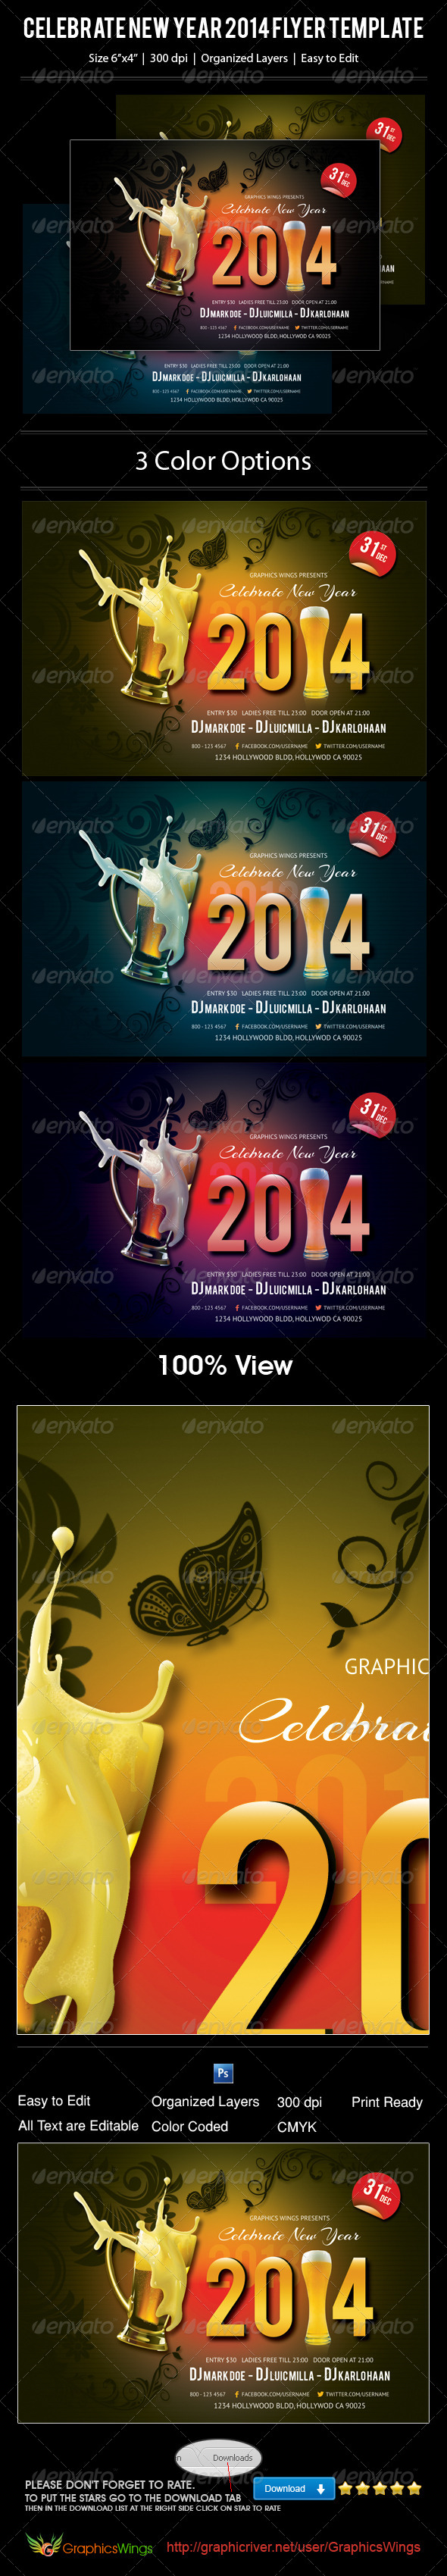 GraphicRiver Celebrate New Year 2014 Flyer Template 6350167